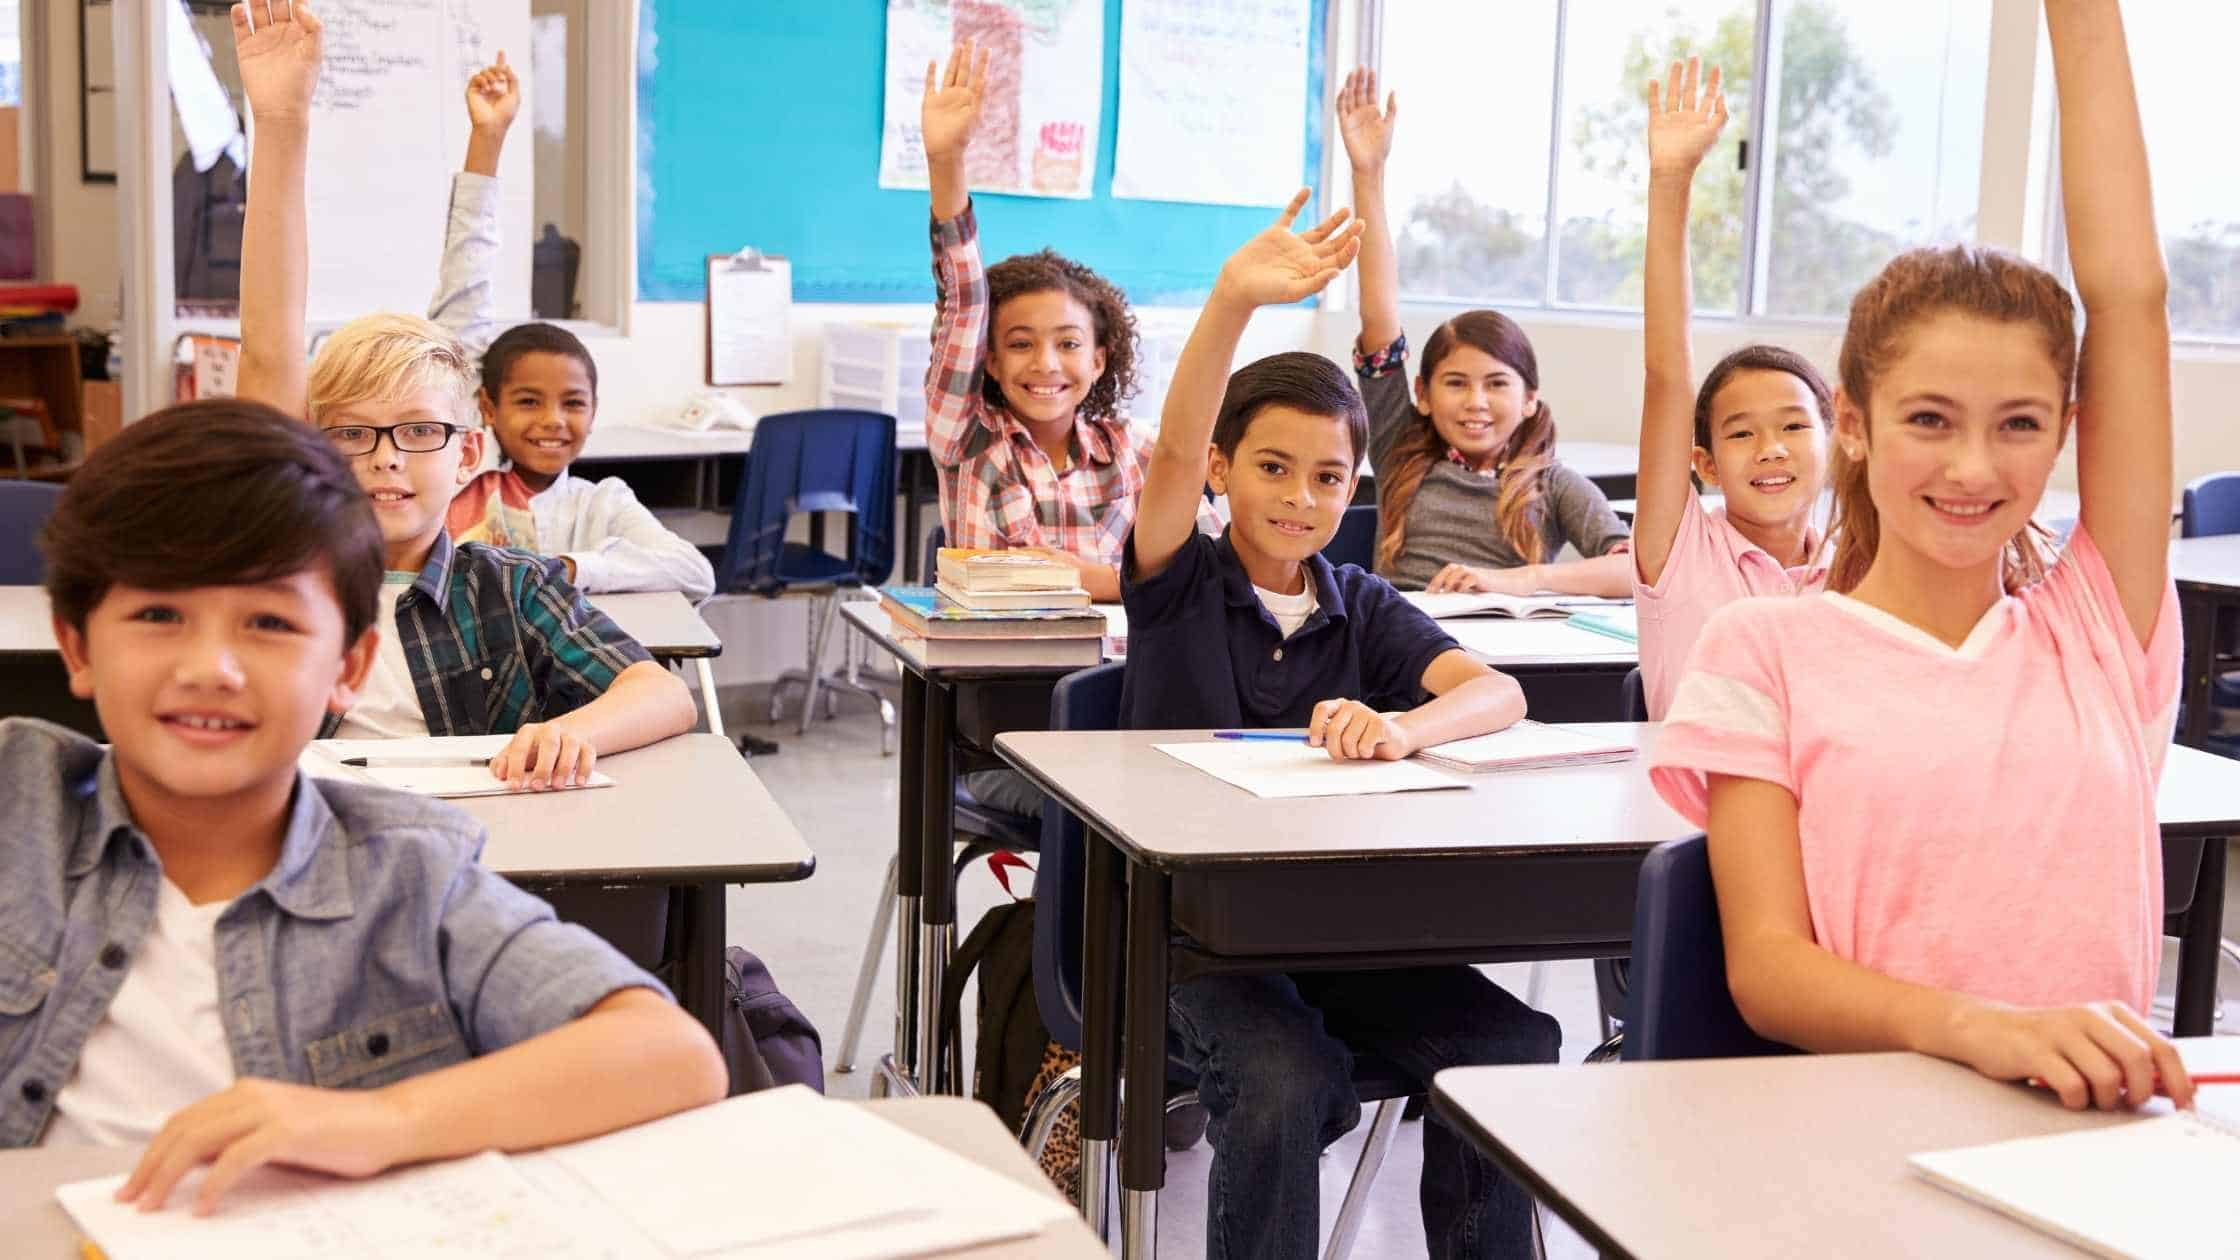 A classroom of kids sitting at their desks and raising their hands